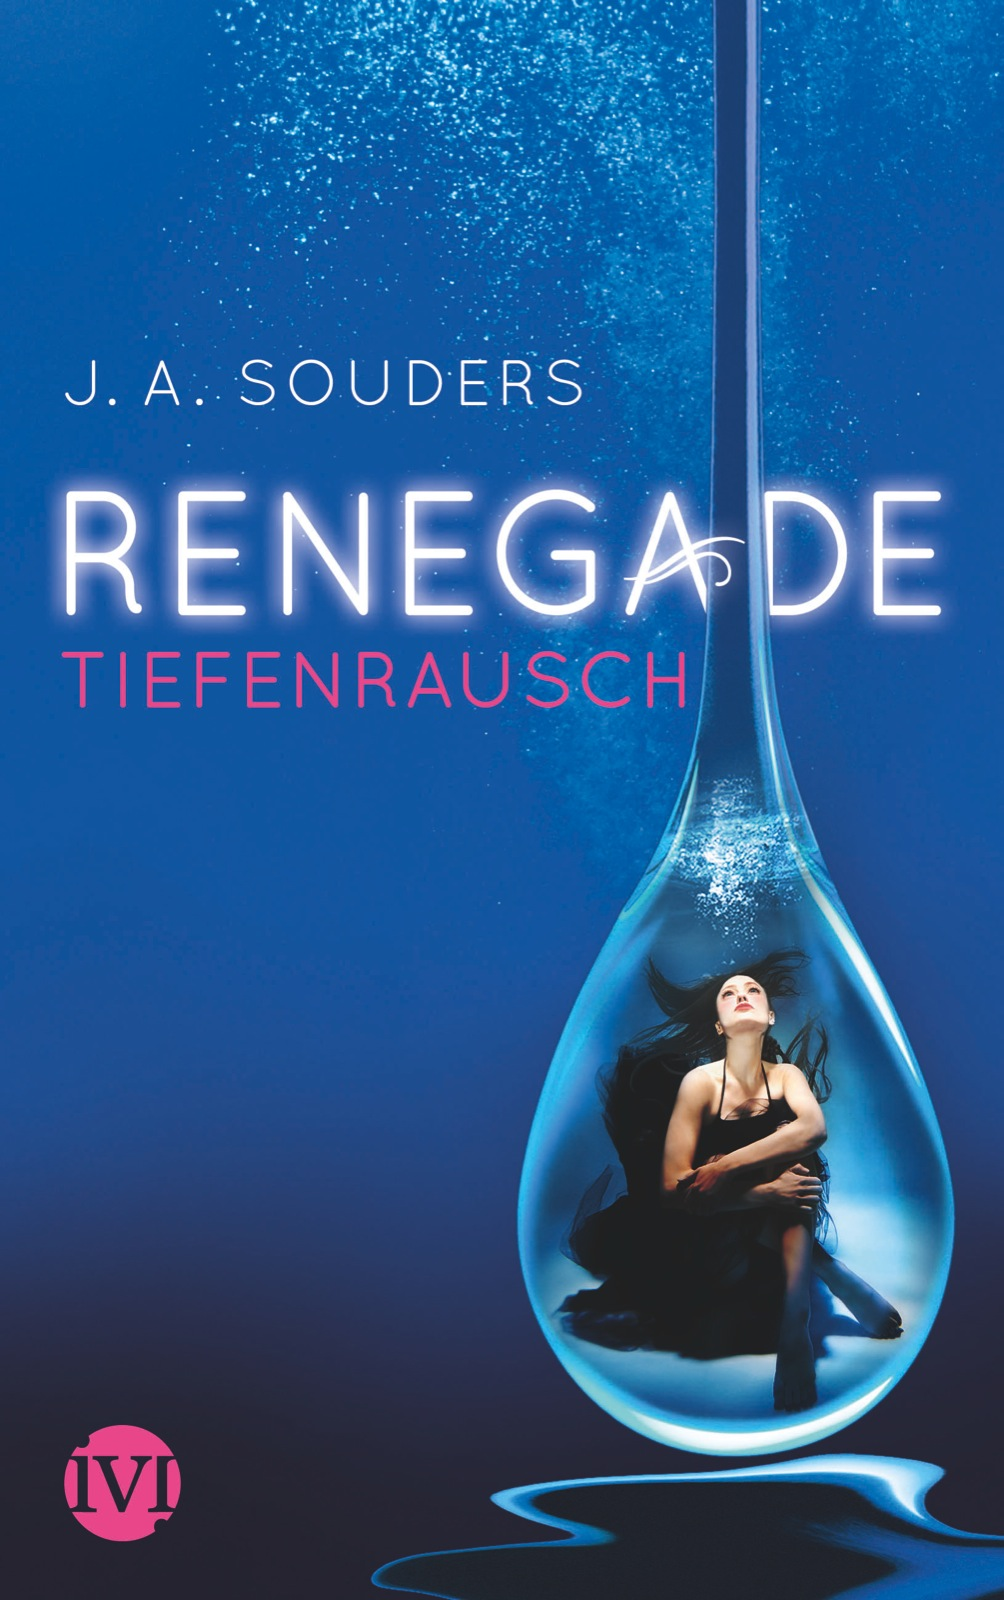 http://www.amazon.de/Renegade-Tiefenrausch-J-Souders/dp/3492702813/ref=sr_1_1?s=books&ie=UTF8&qid=1389900167&sr=1-1&keywords=renegade+tiefenrausch